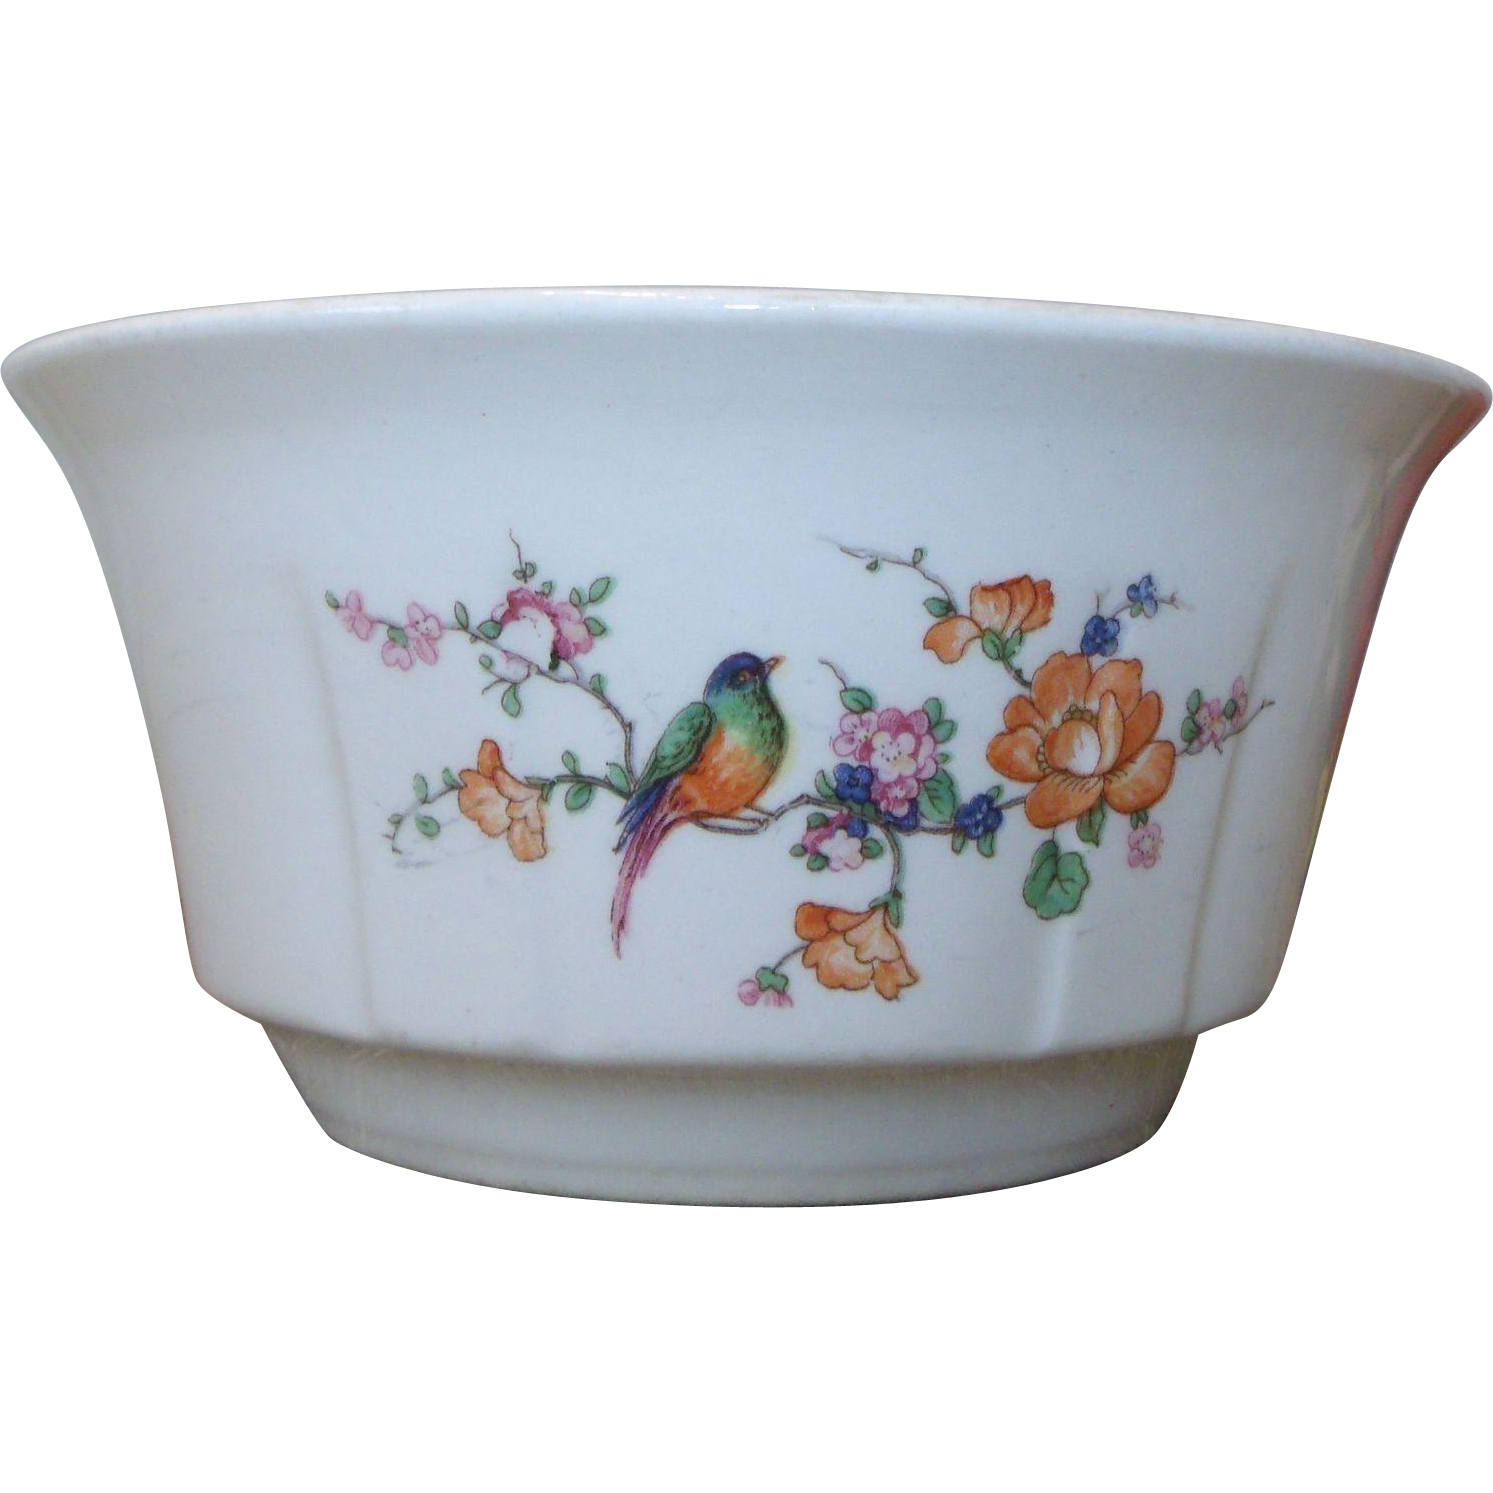 Knowles, Taylor & Knowles - Ivory Bowl Colorful Bird on Branch